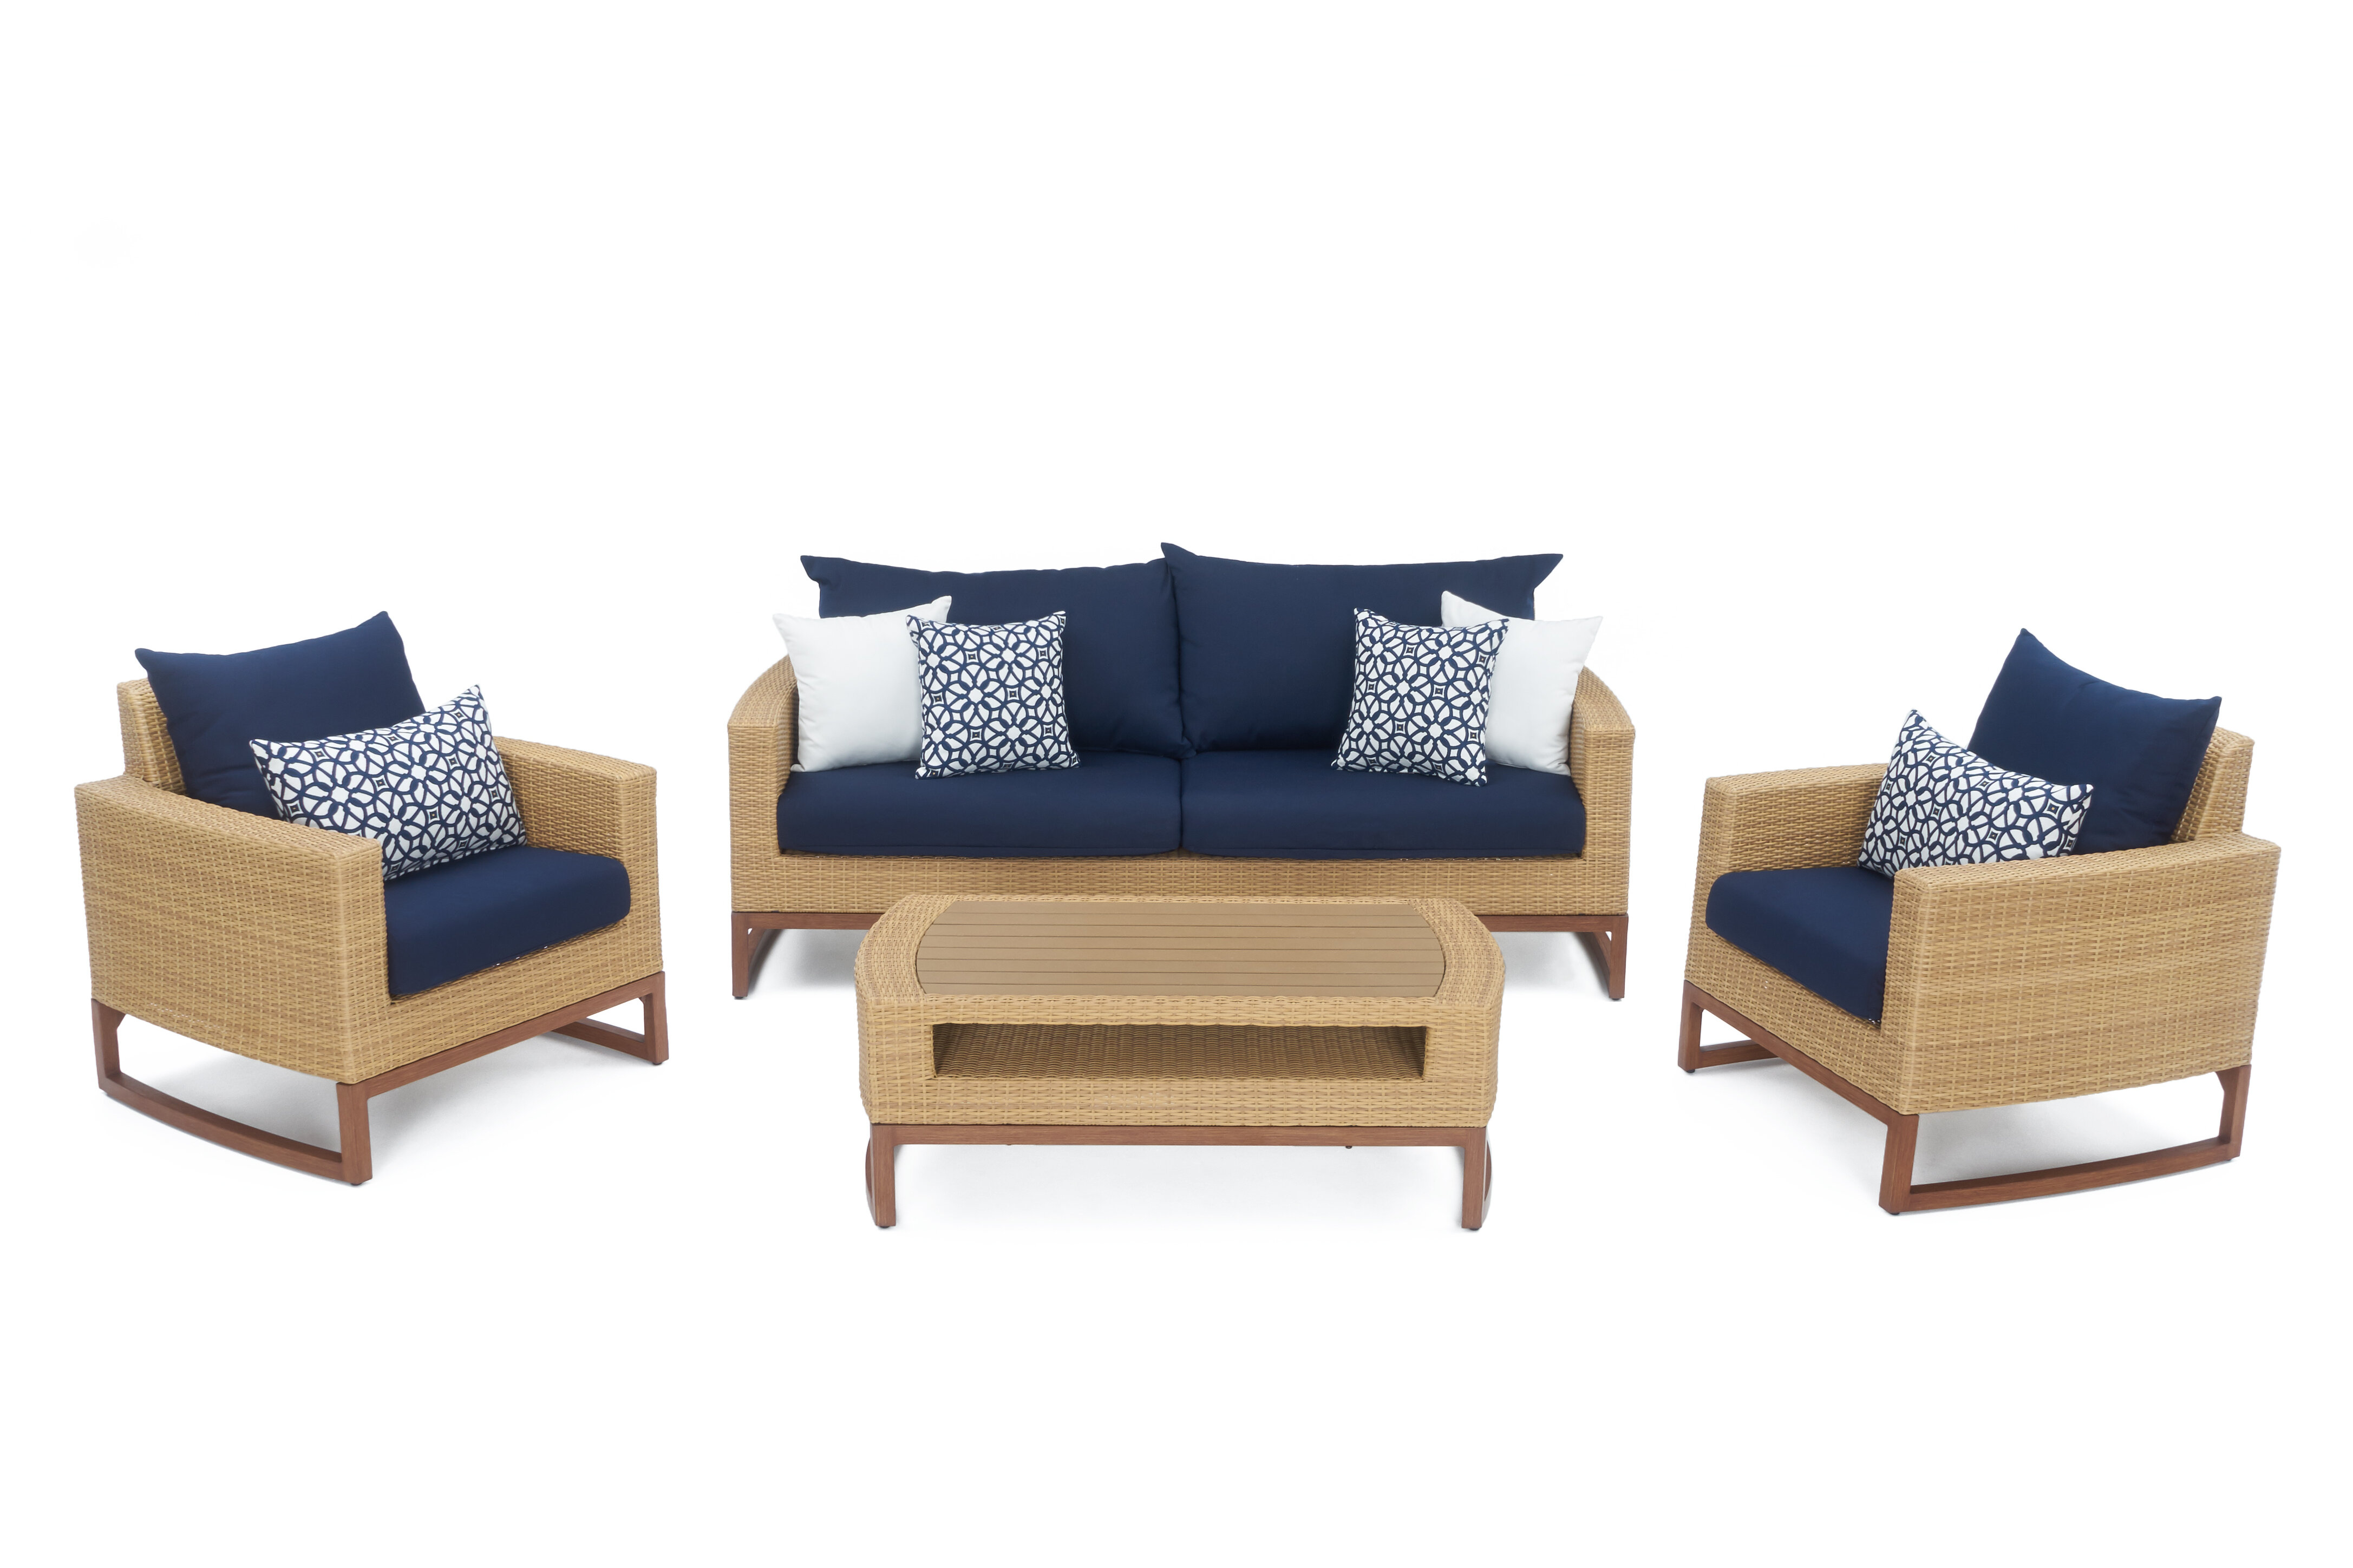 Addison 4 Piece Sunbrella Sofa Seating Group with Cushions & Reviews ...